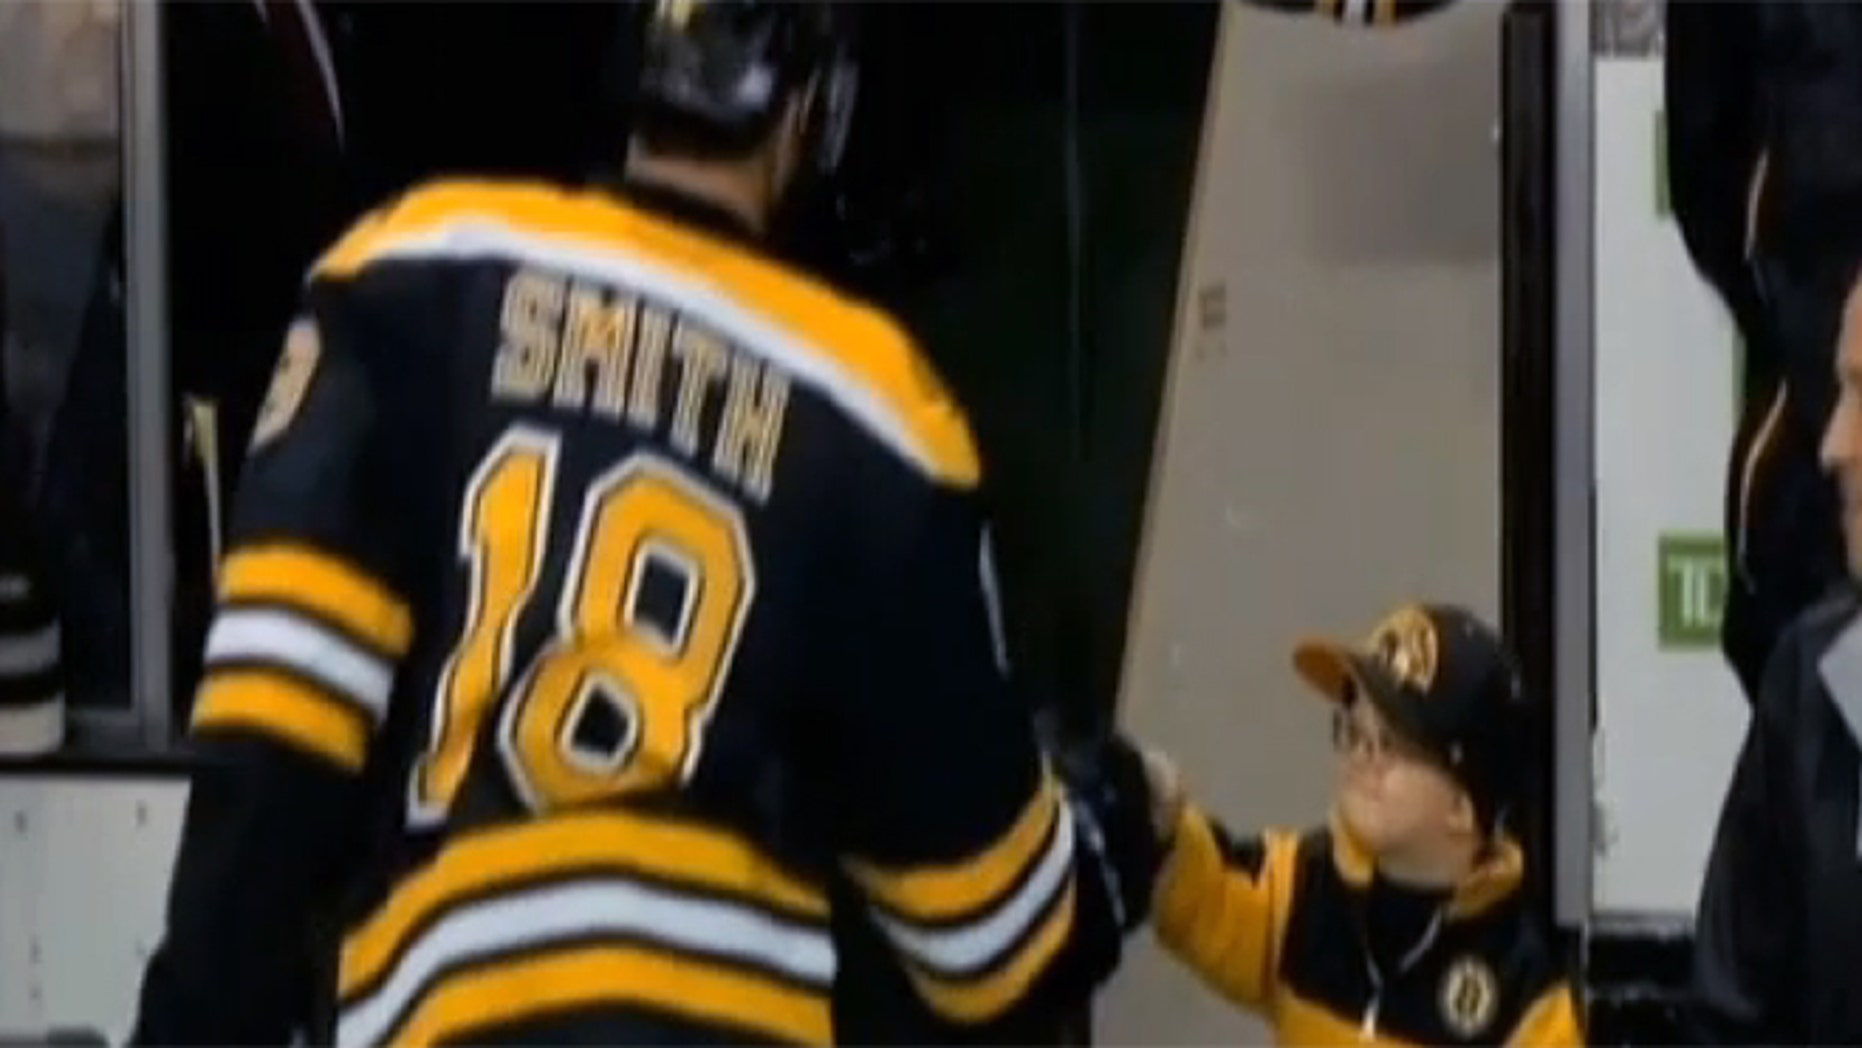 Eight-year-old Liam Fitzgerald shares a fist-bump with Reilly Smith of the Boston Bruins.